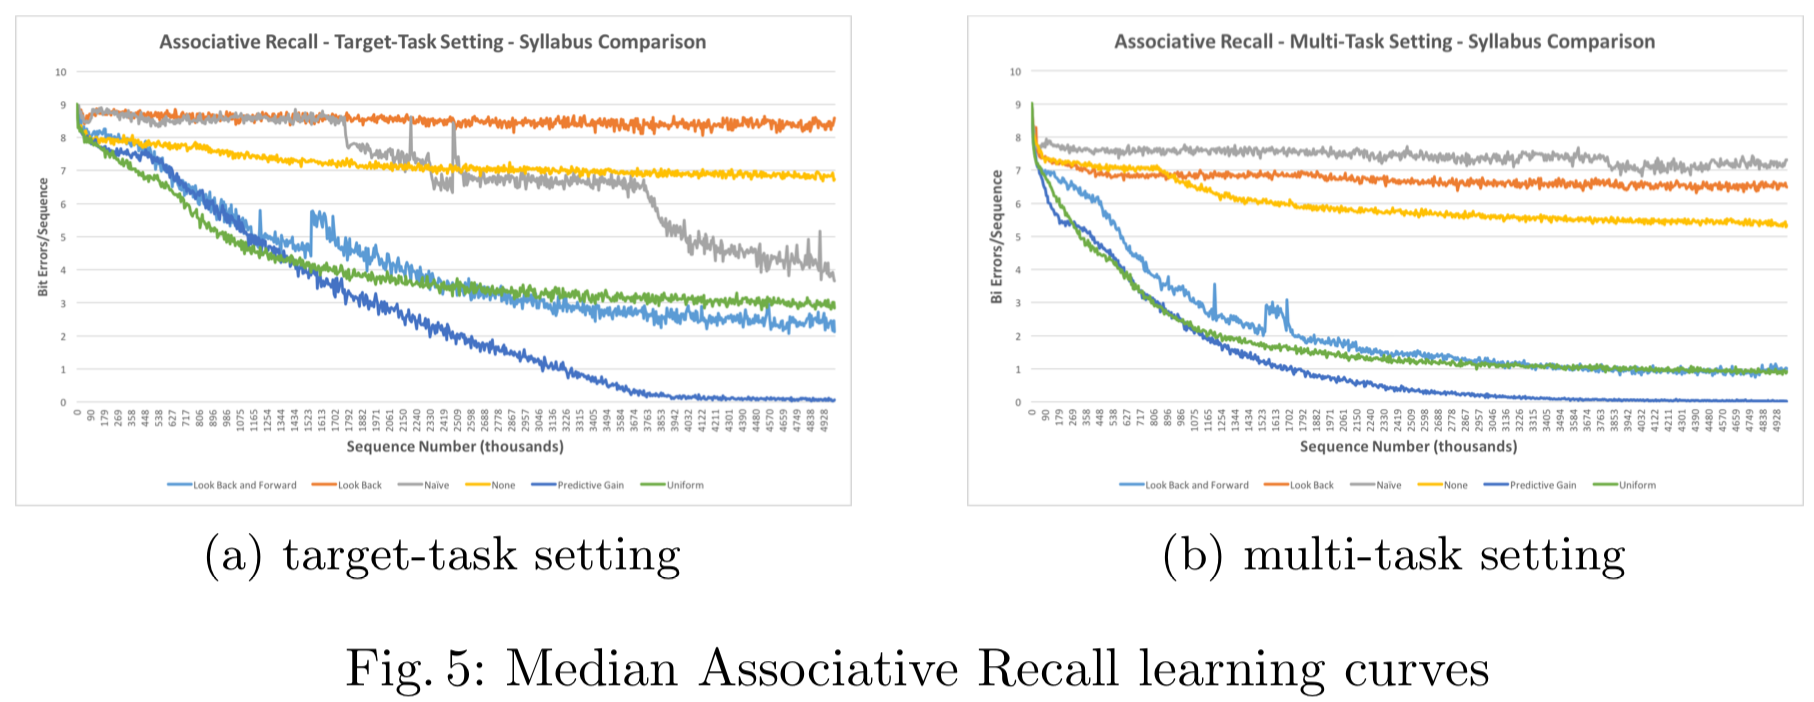 Fig. 5: Median Associative Recall learning curves